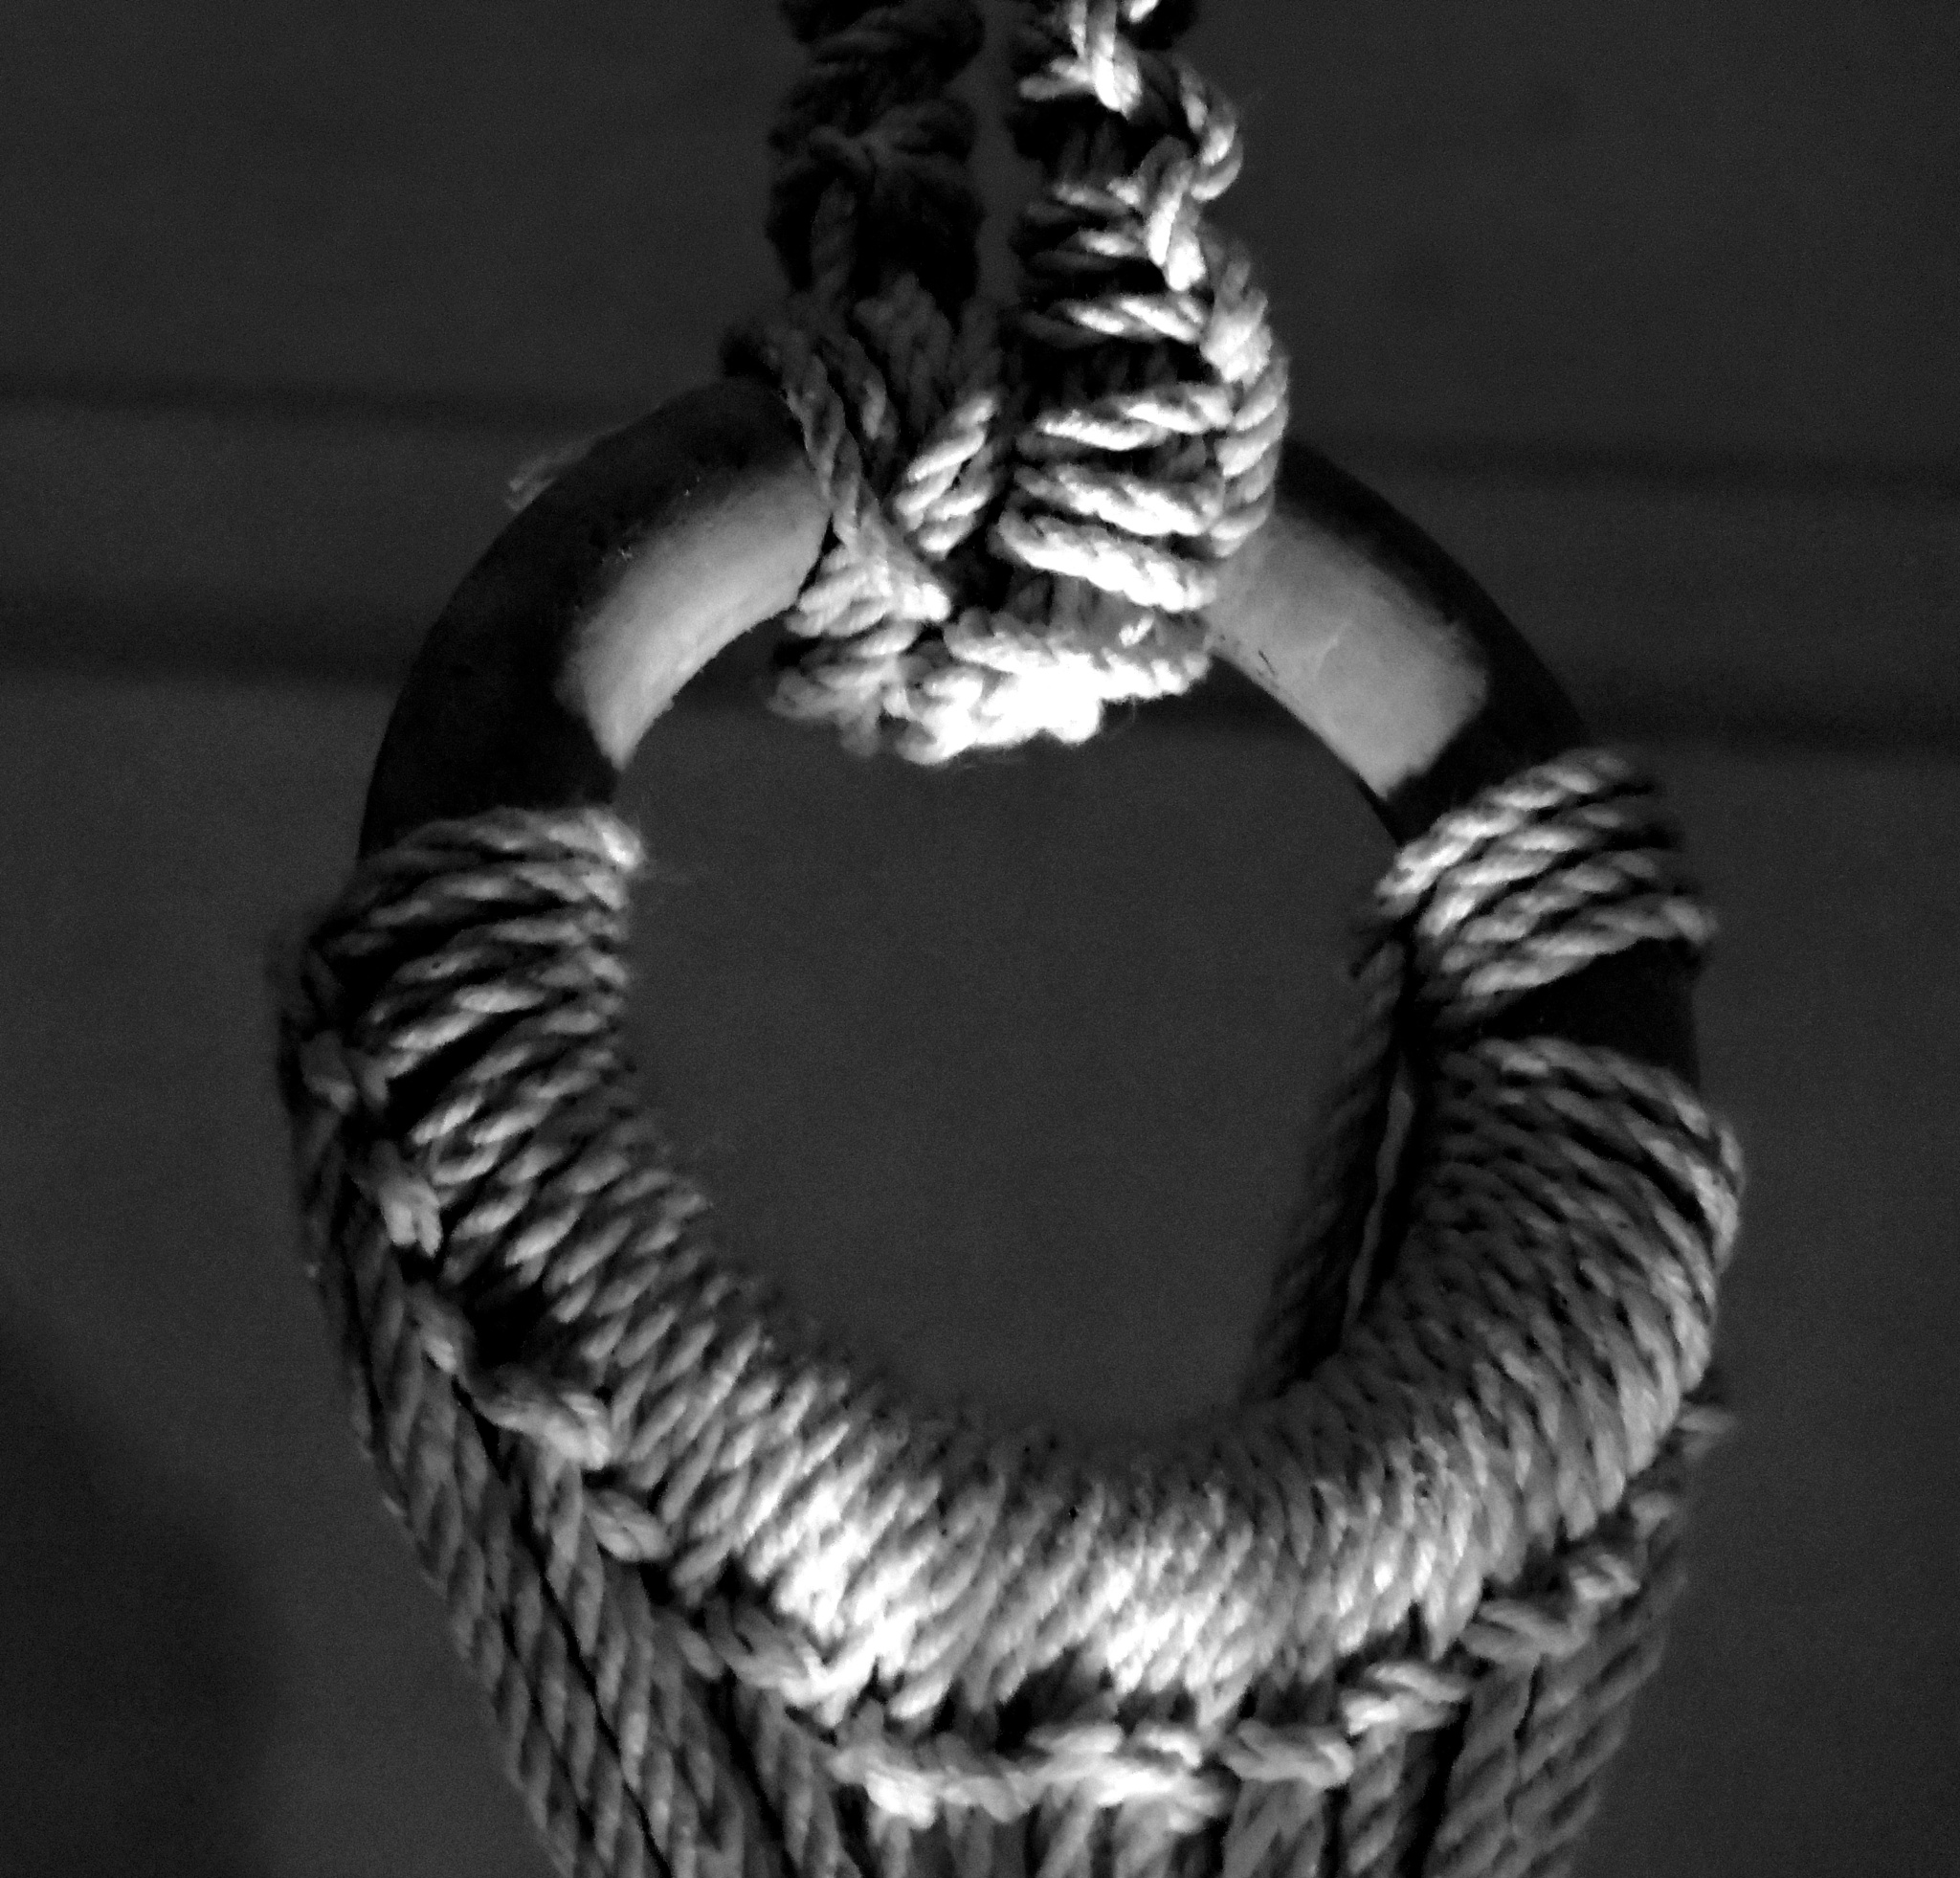 Argolla anudada   (Knotted ring) by marcelo.vazquez.1964